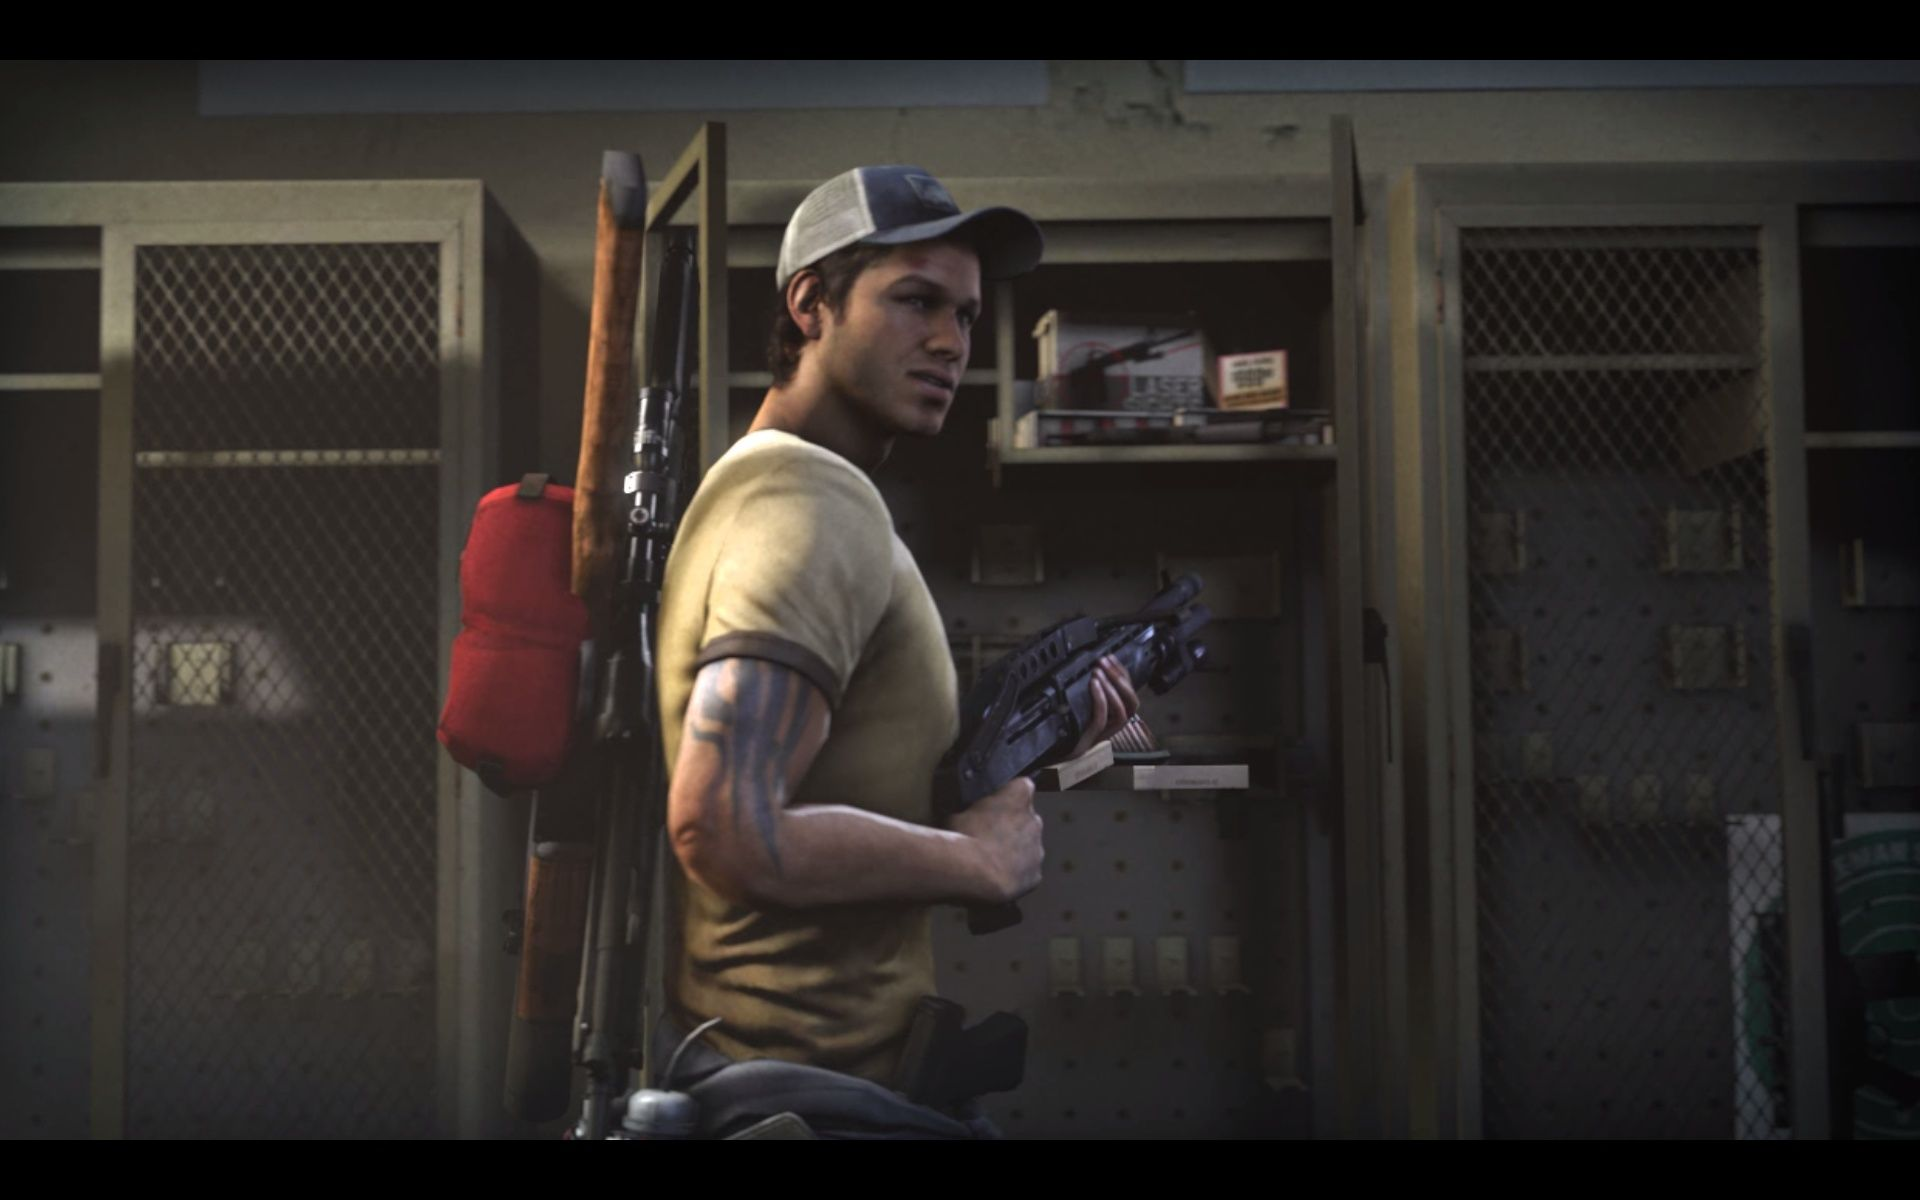 Left 4 Dead 2 Windows The intro presents the new characters. This is the car mechanic Ellis.